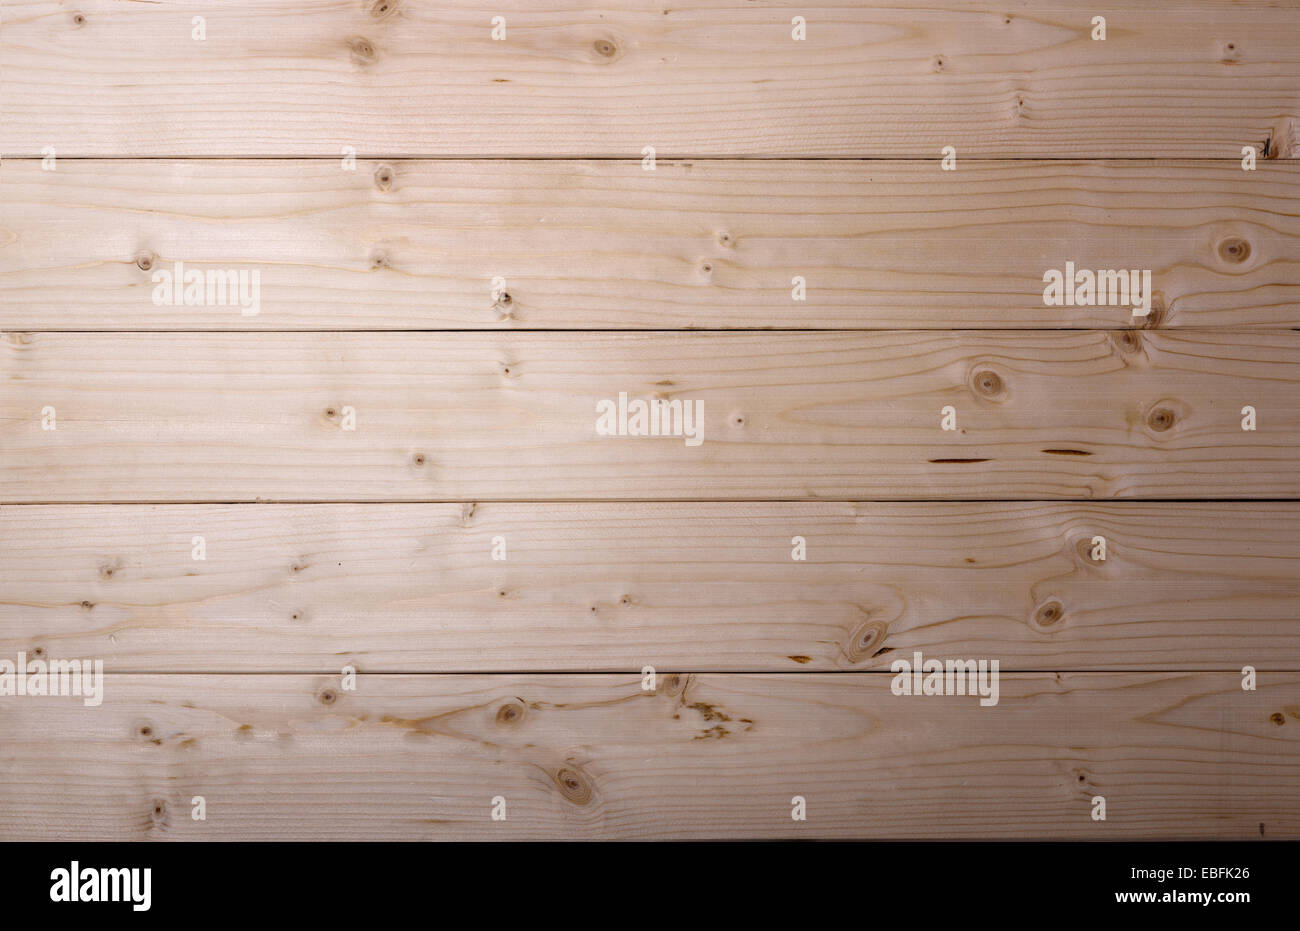 Wood plank brown texture background - Stock Image